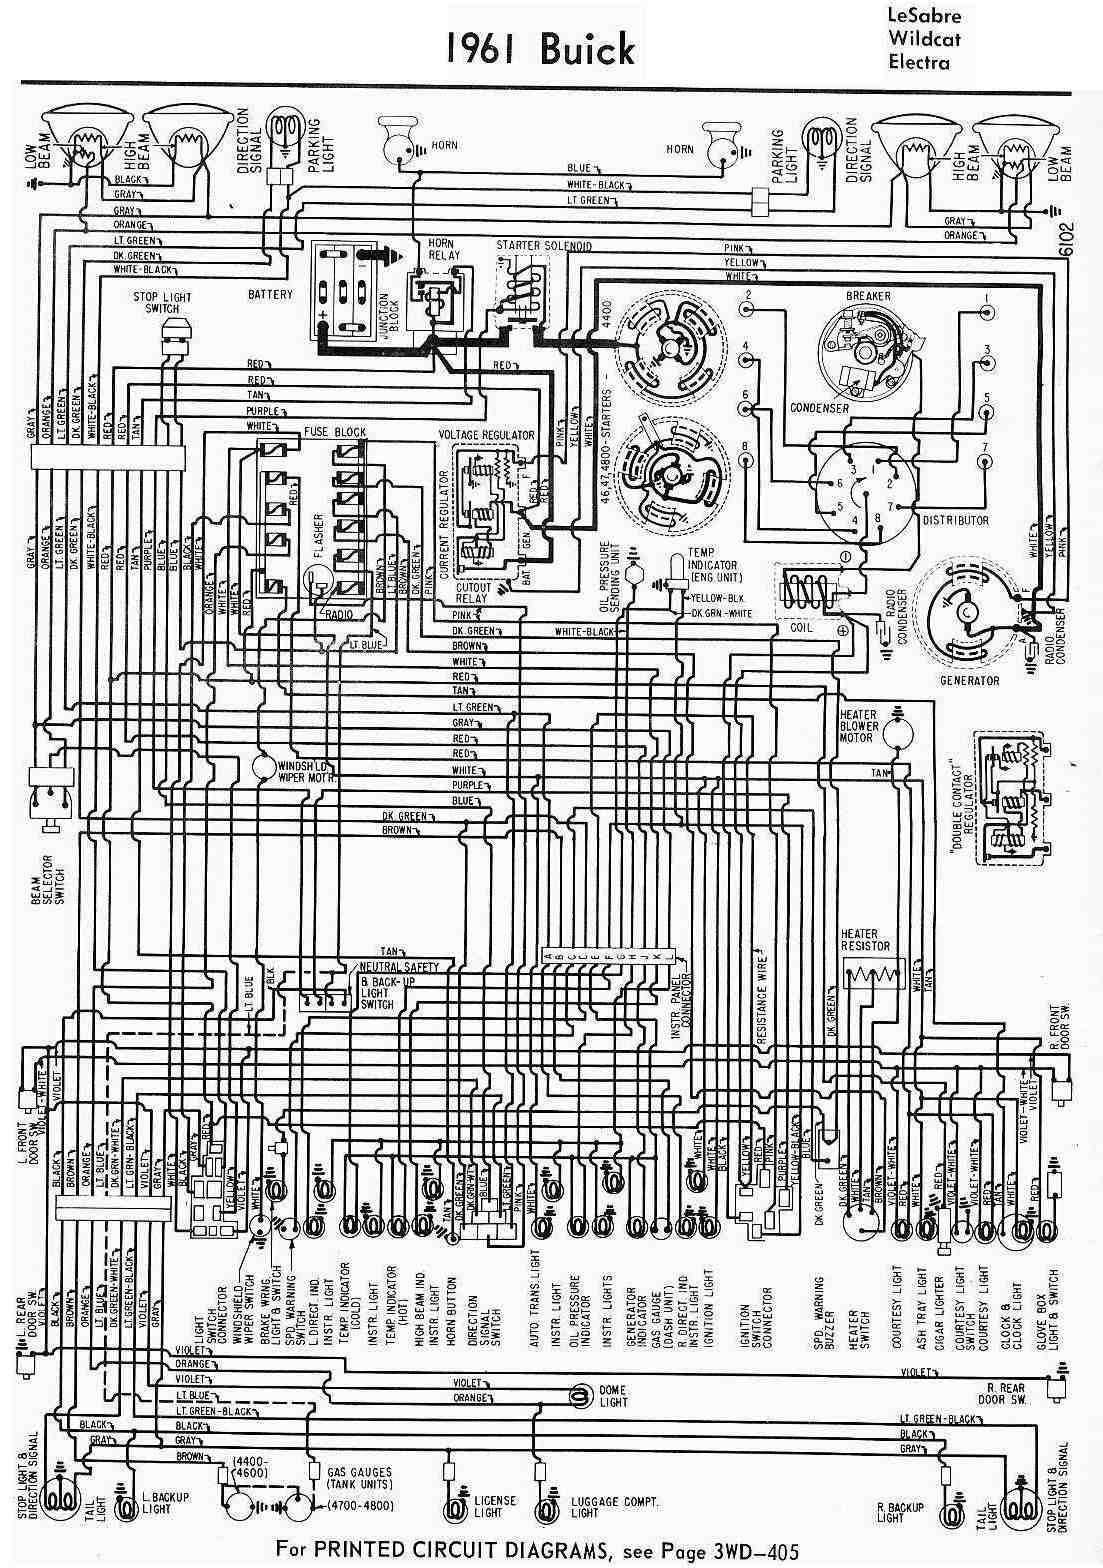 Wiring Harness Diagram : December all about wiring diagrams